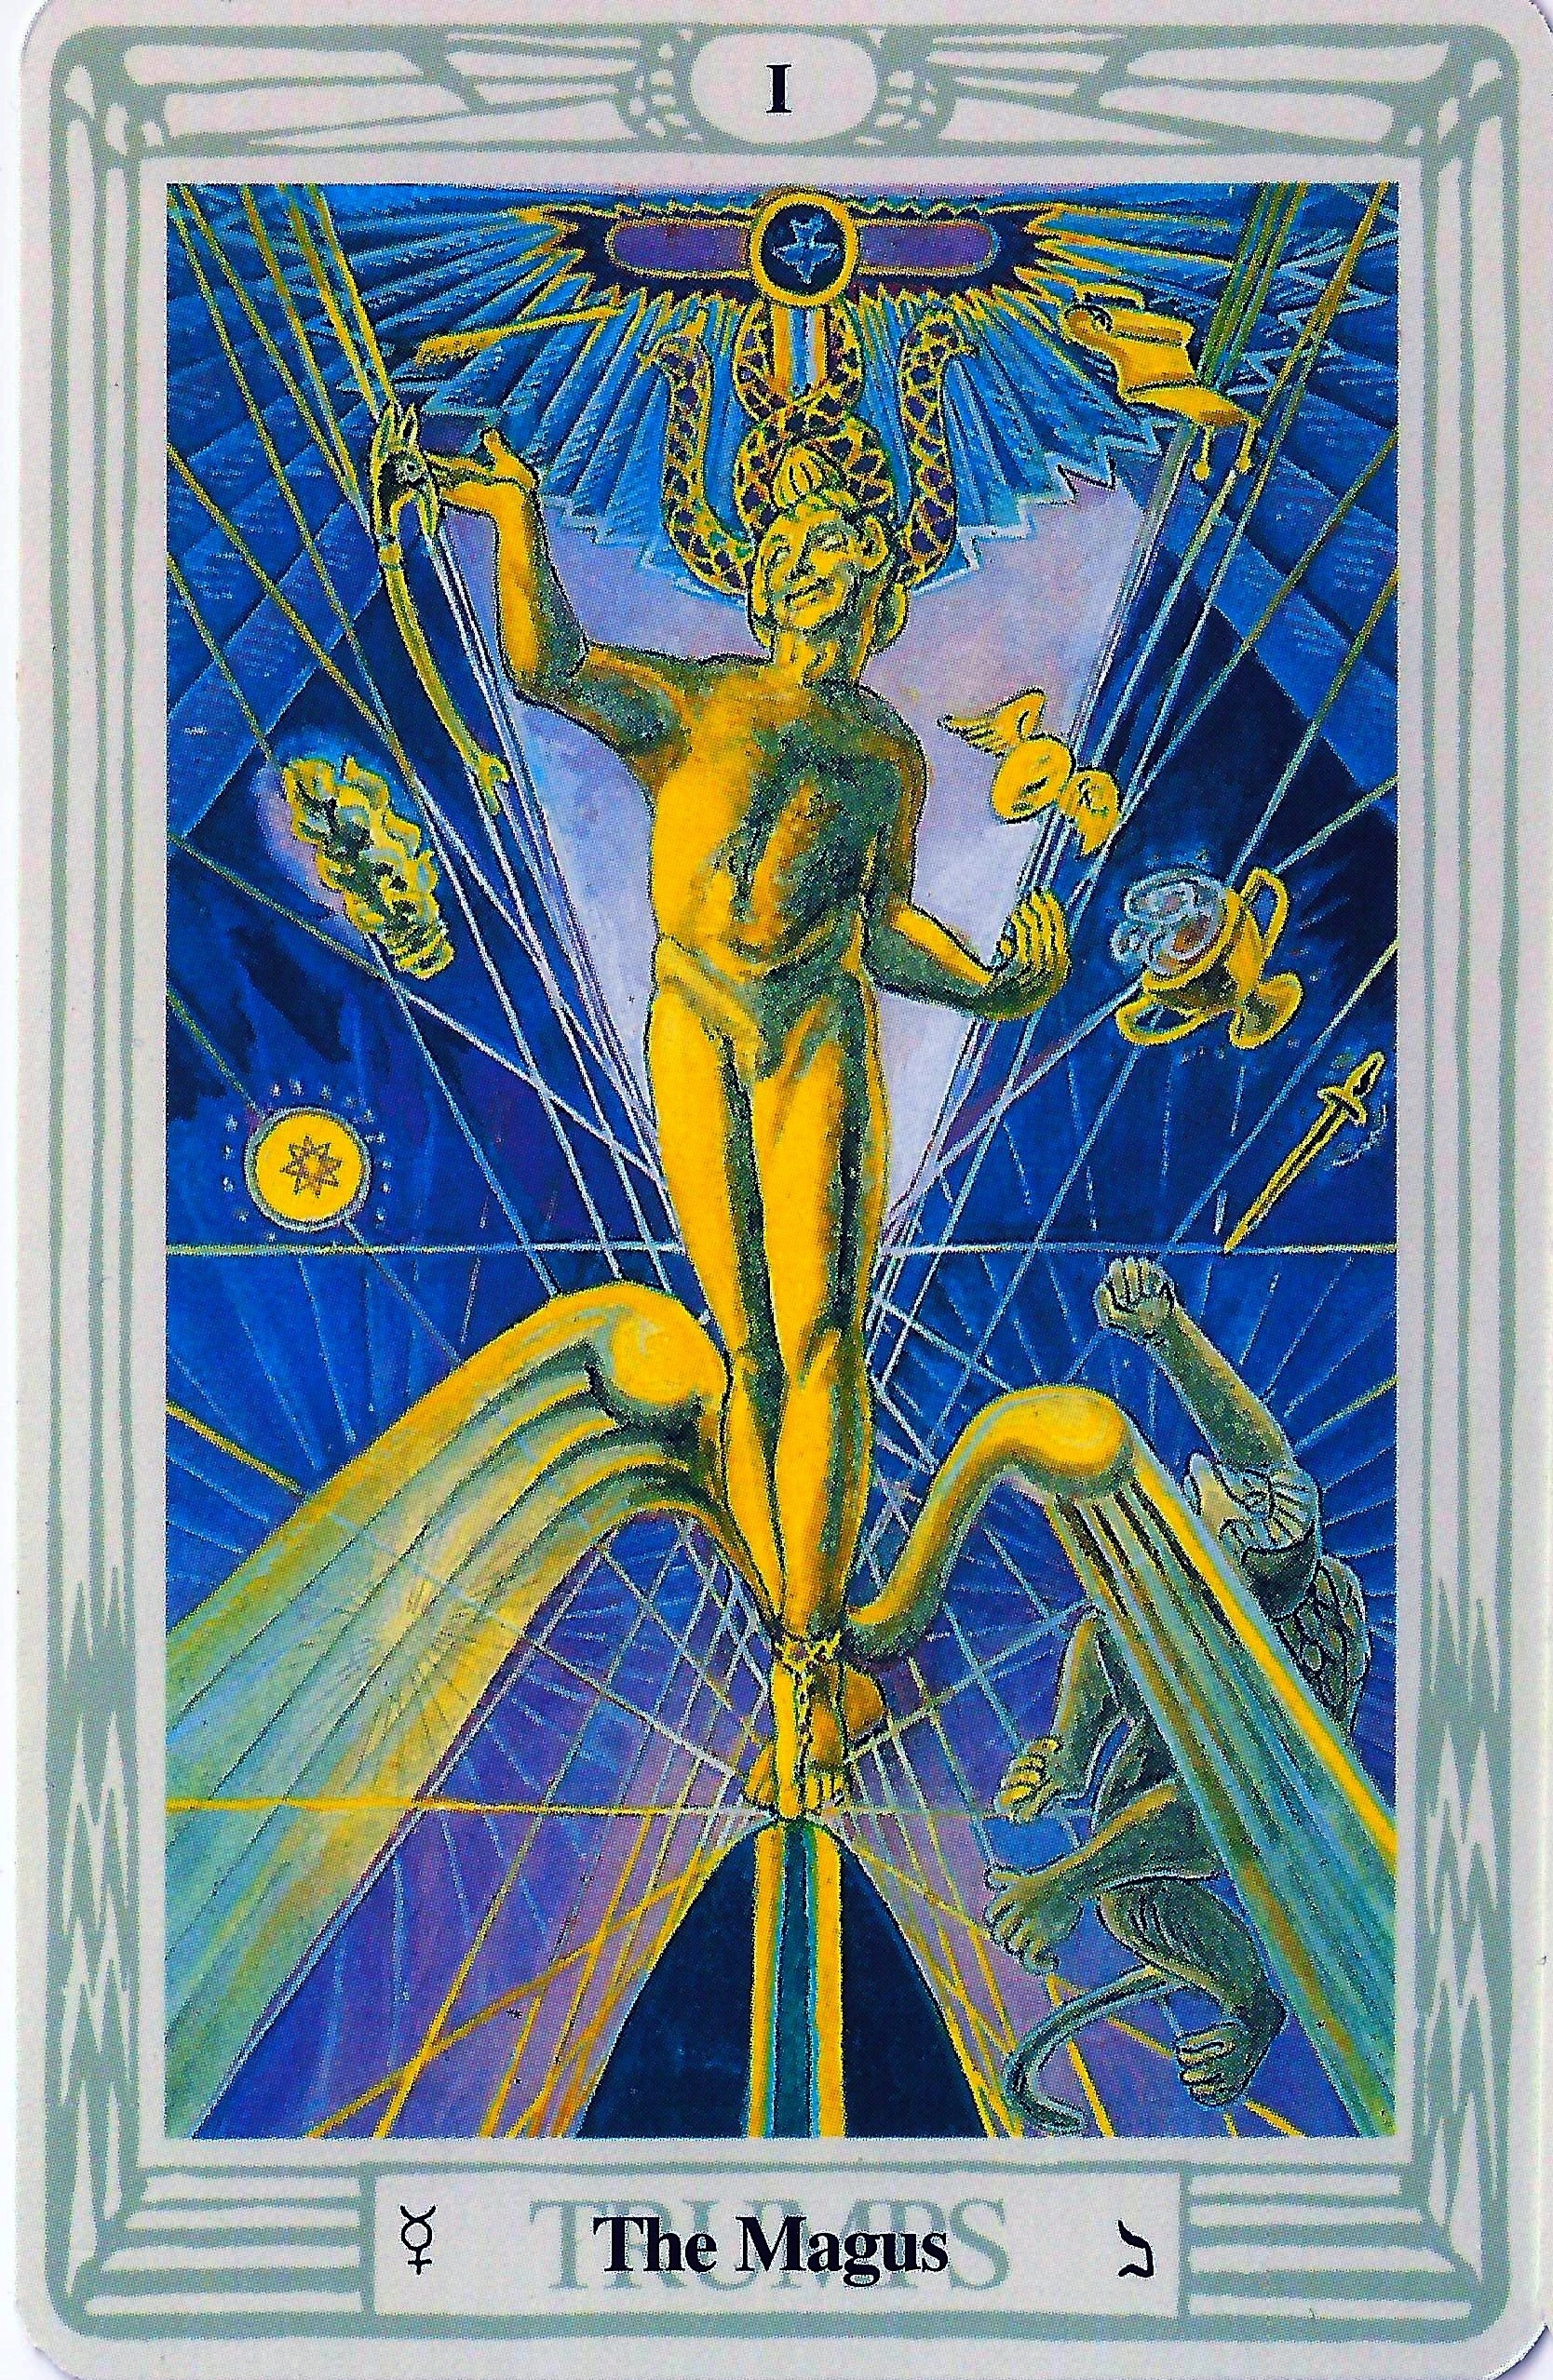 Thoth Magus Tarot Card Tutorial Esoteric Meanings